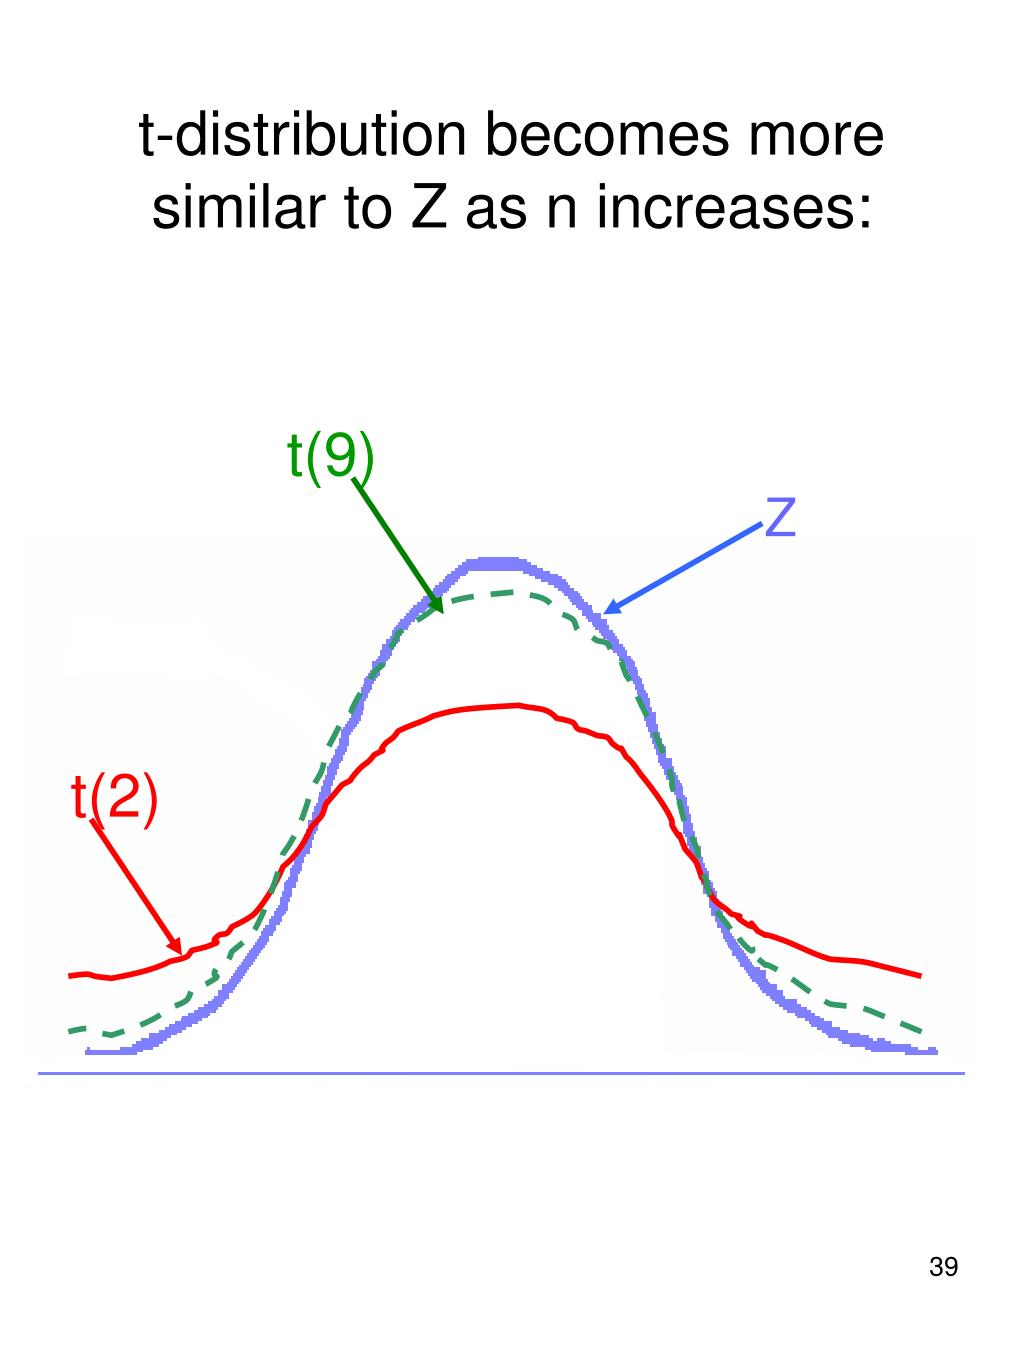 t-distribution becomes more similar to Z as n increases: